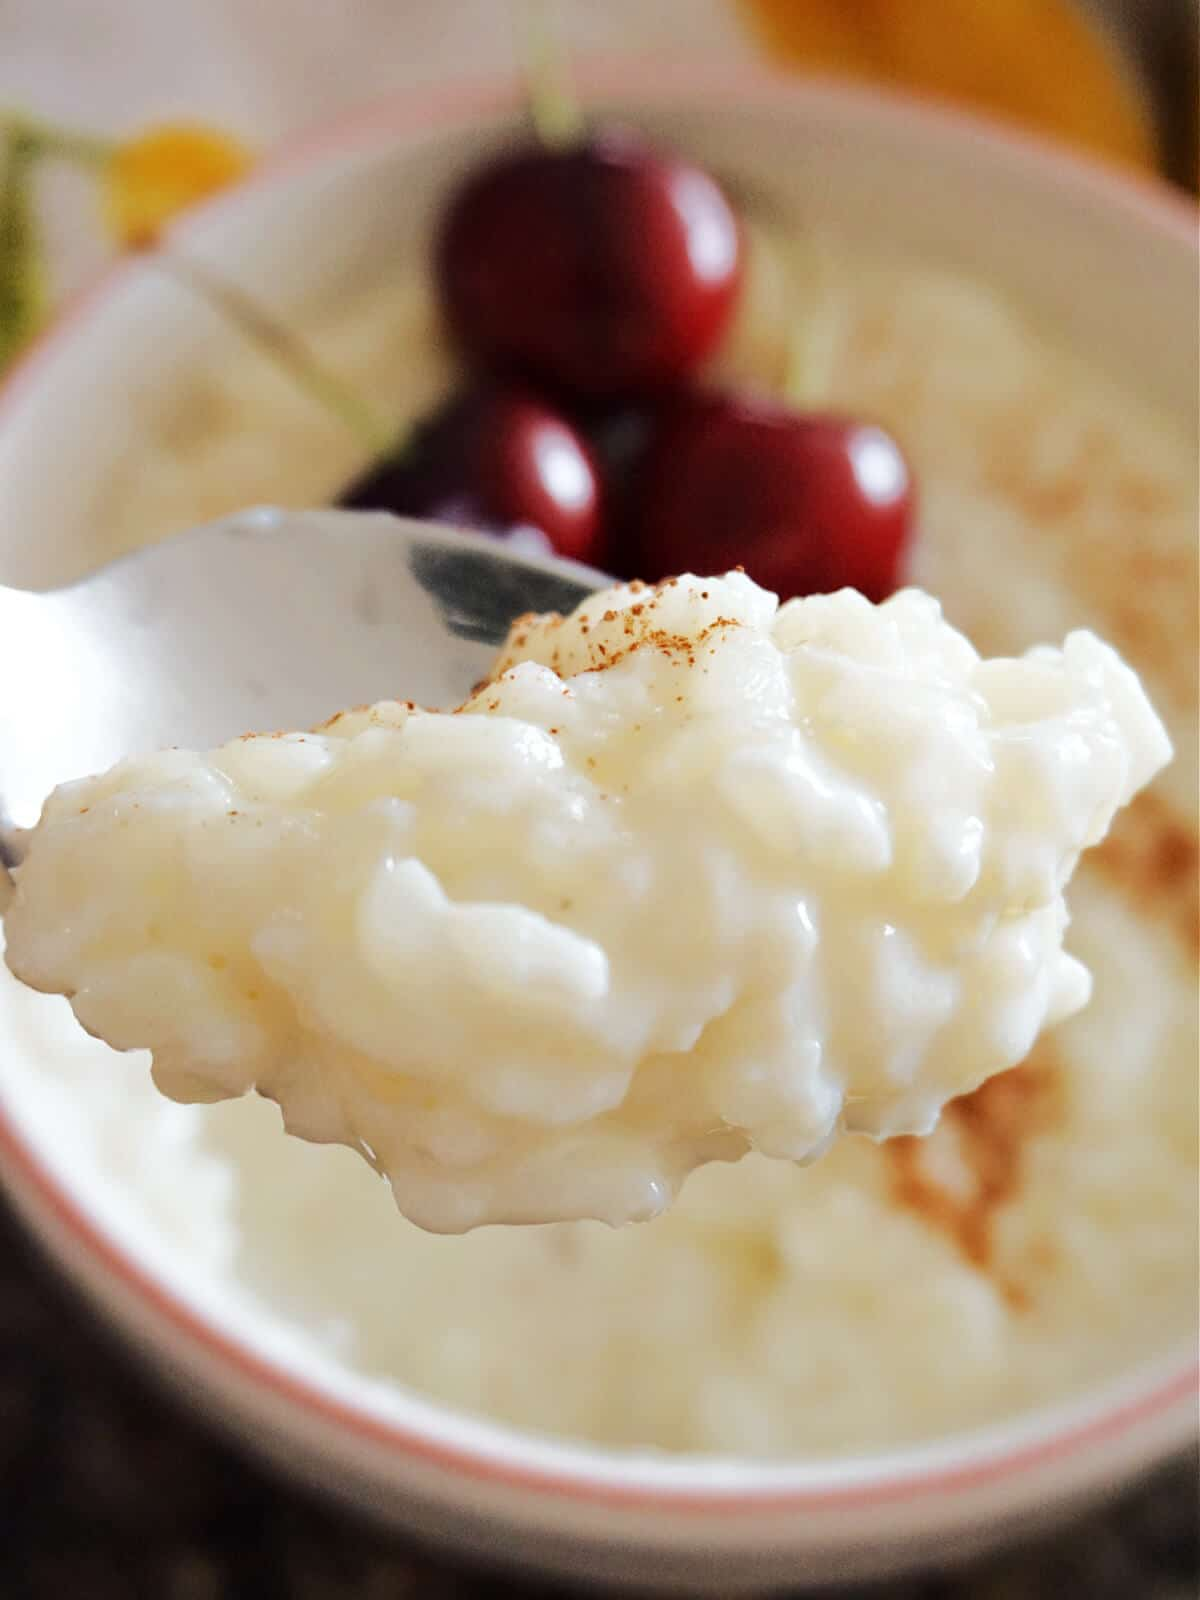 A spoonful of rice pudding over a bowl with more pudding and 3 cherries